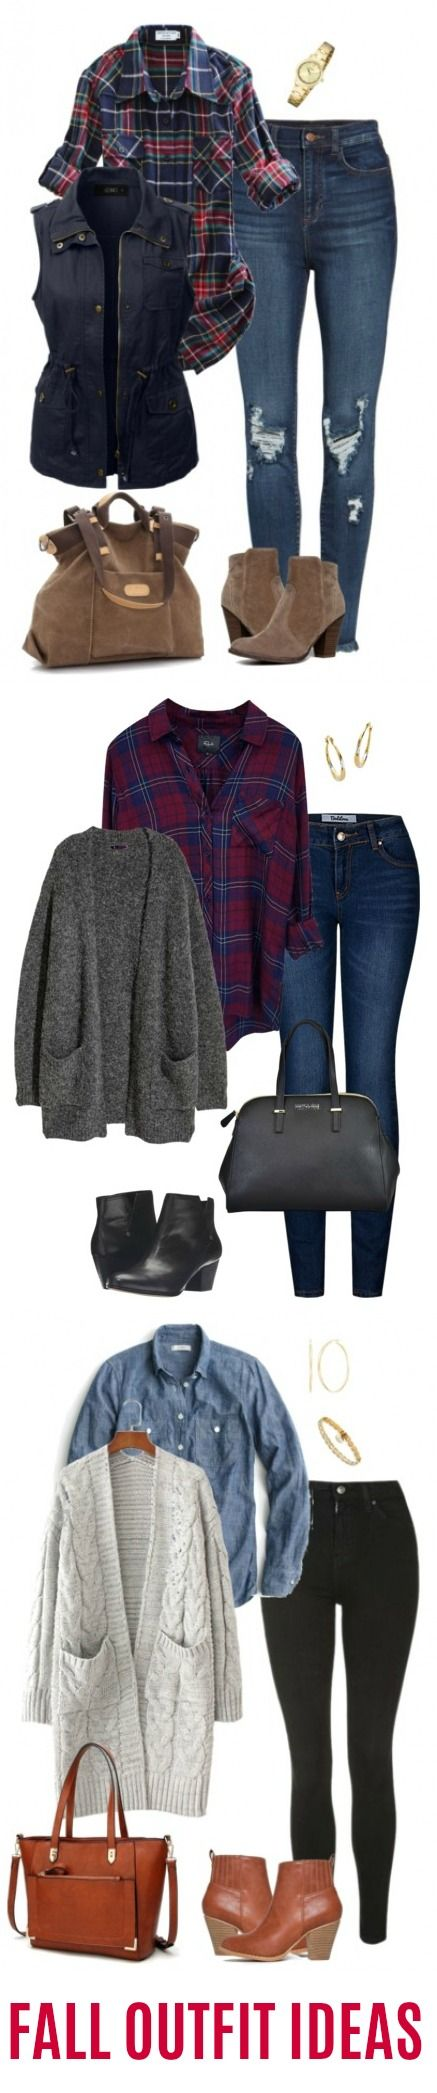 Fall outfit ideas: Welcome to the November edition of What to Wear This Month! You'll fund 15 November outfit ideas perfect for your fall and winter fashion needs. Any of these would work great for your Thanksgiving outfit, whether you need to dress up or